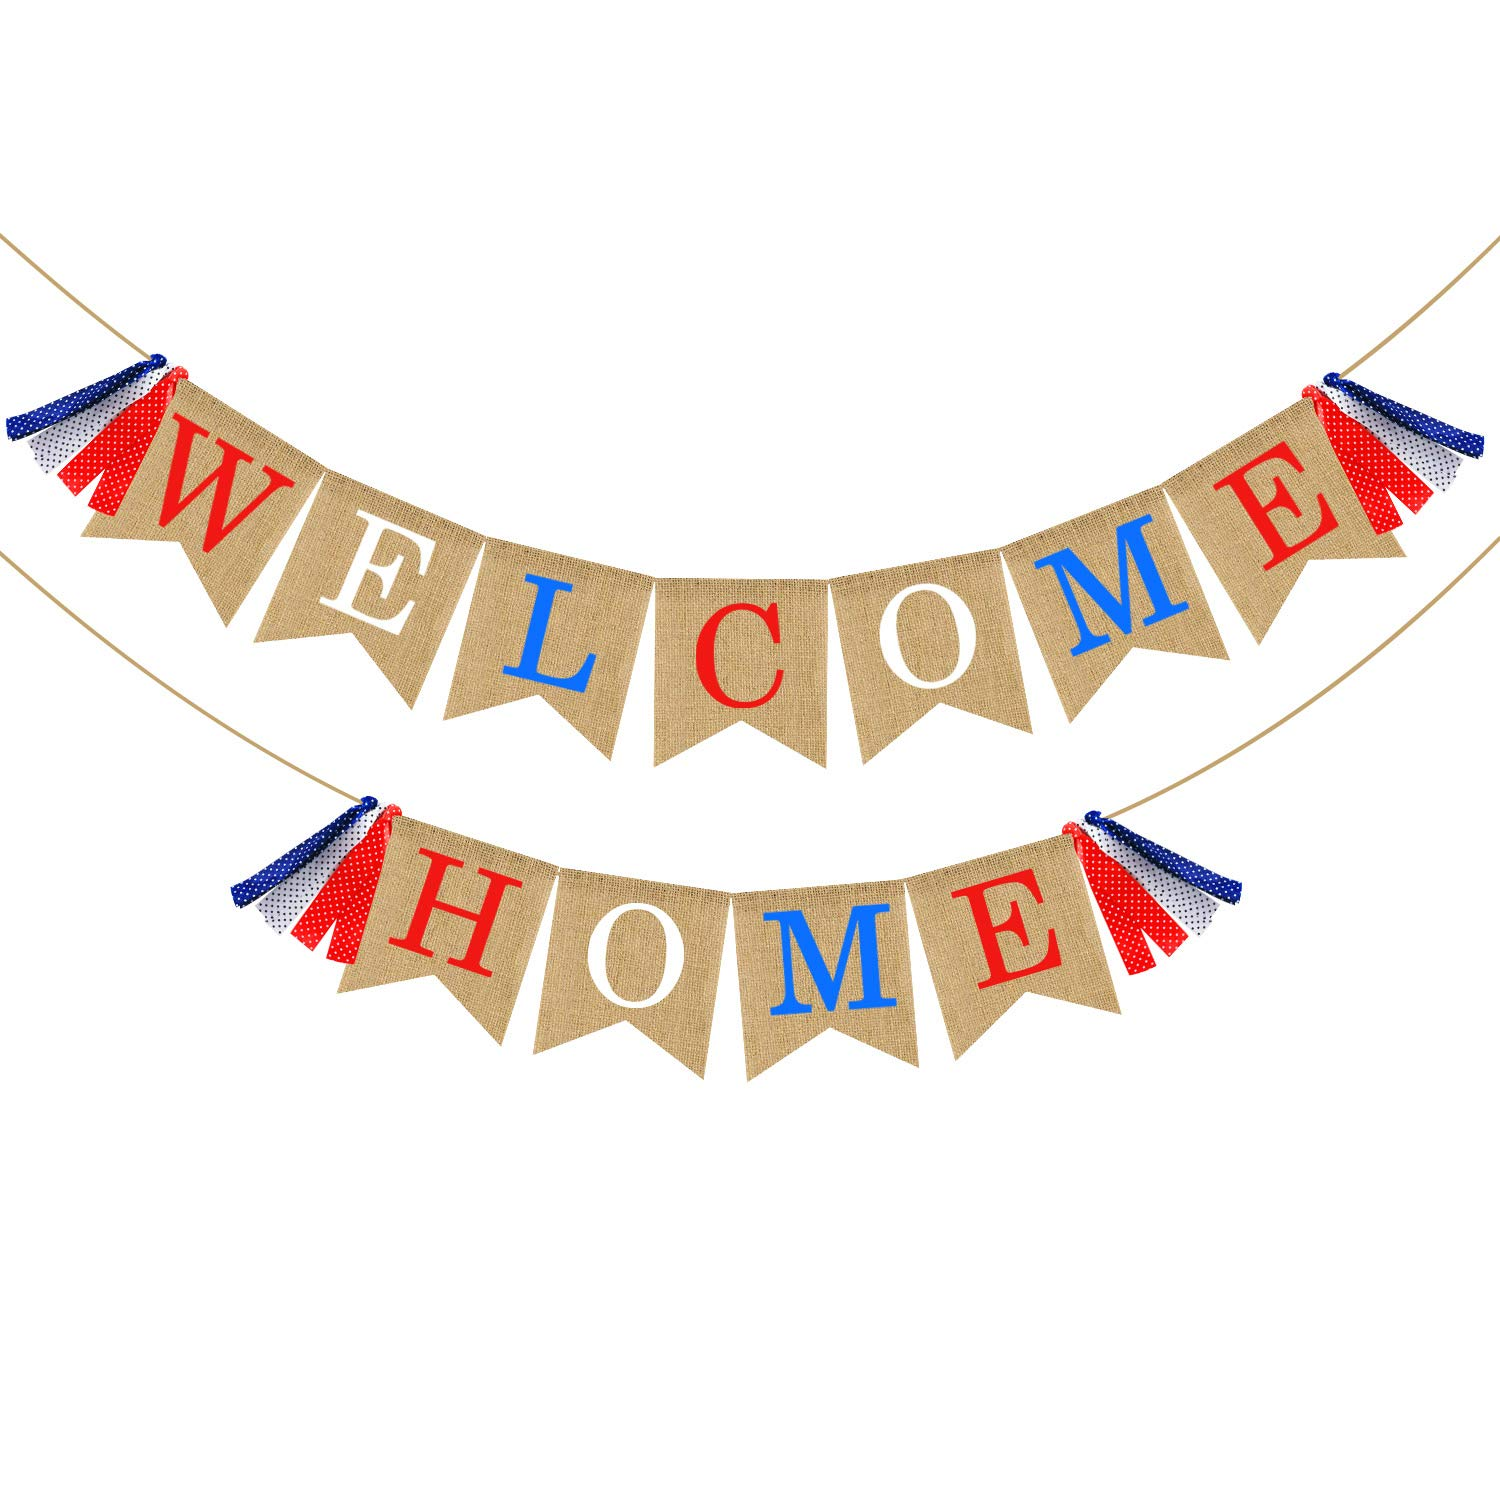 Welcome Home Banner Burlap - Patriotic Banner Bunting - Military Homecoming Banner - Your Family Members Friends Welcome Home Decorations Party Supplies - Red White & Blue